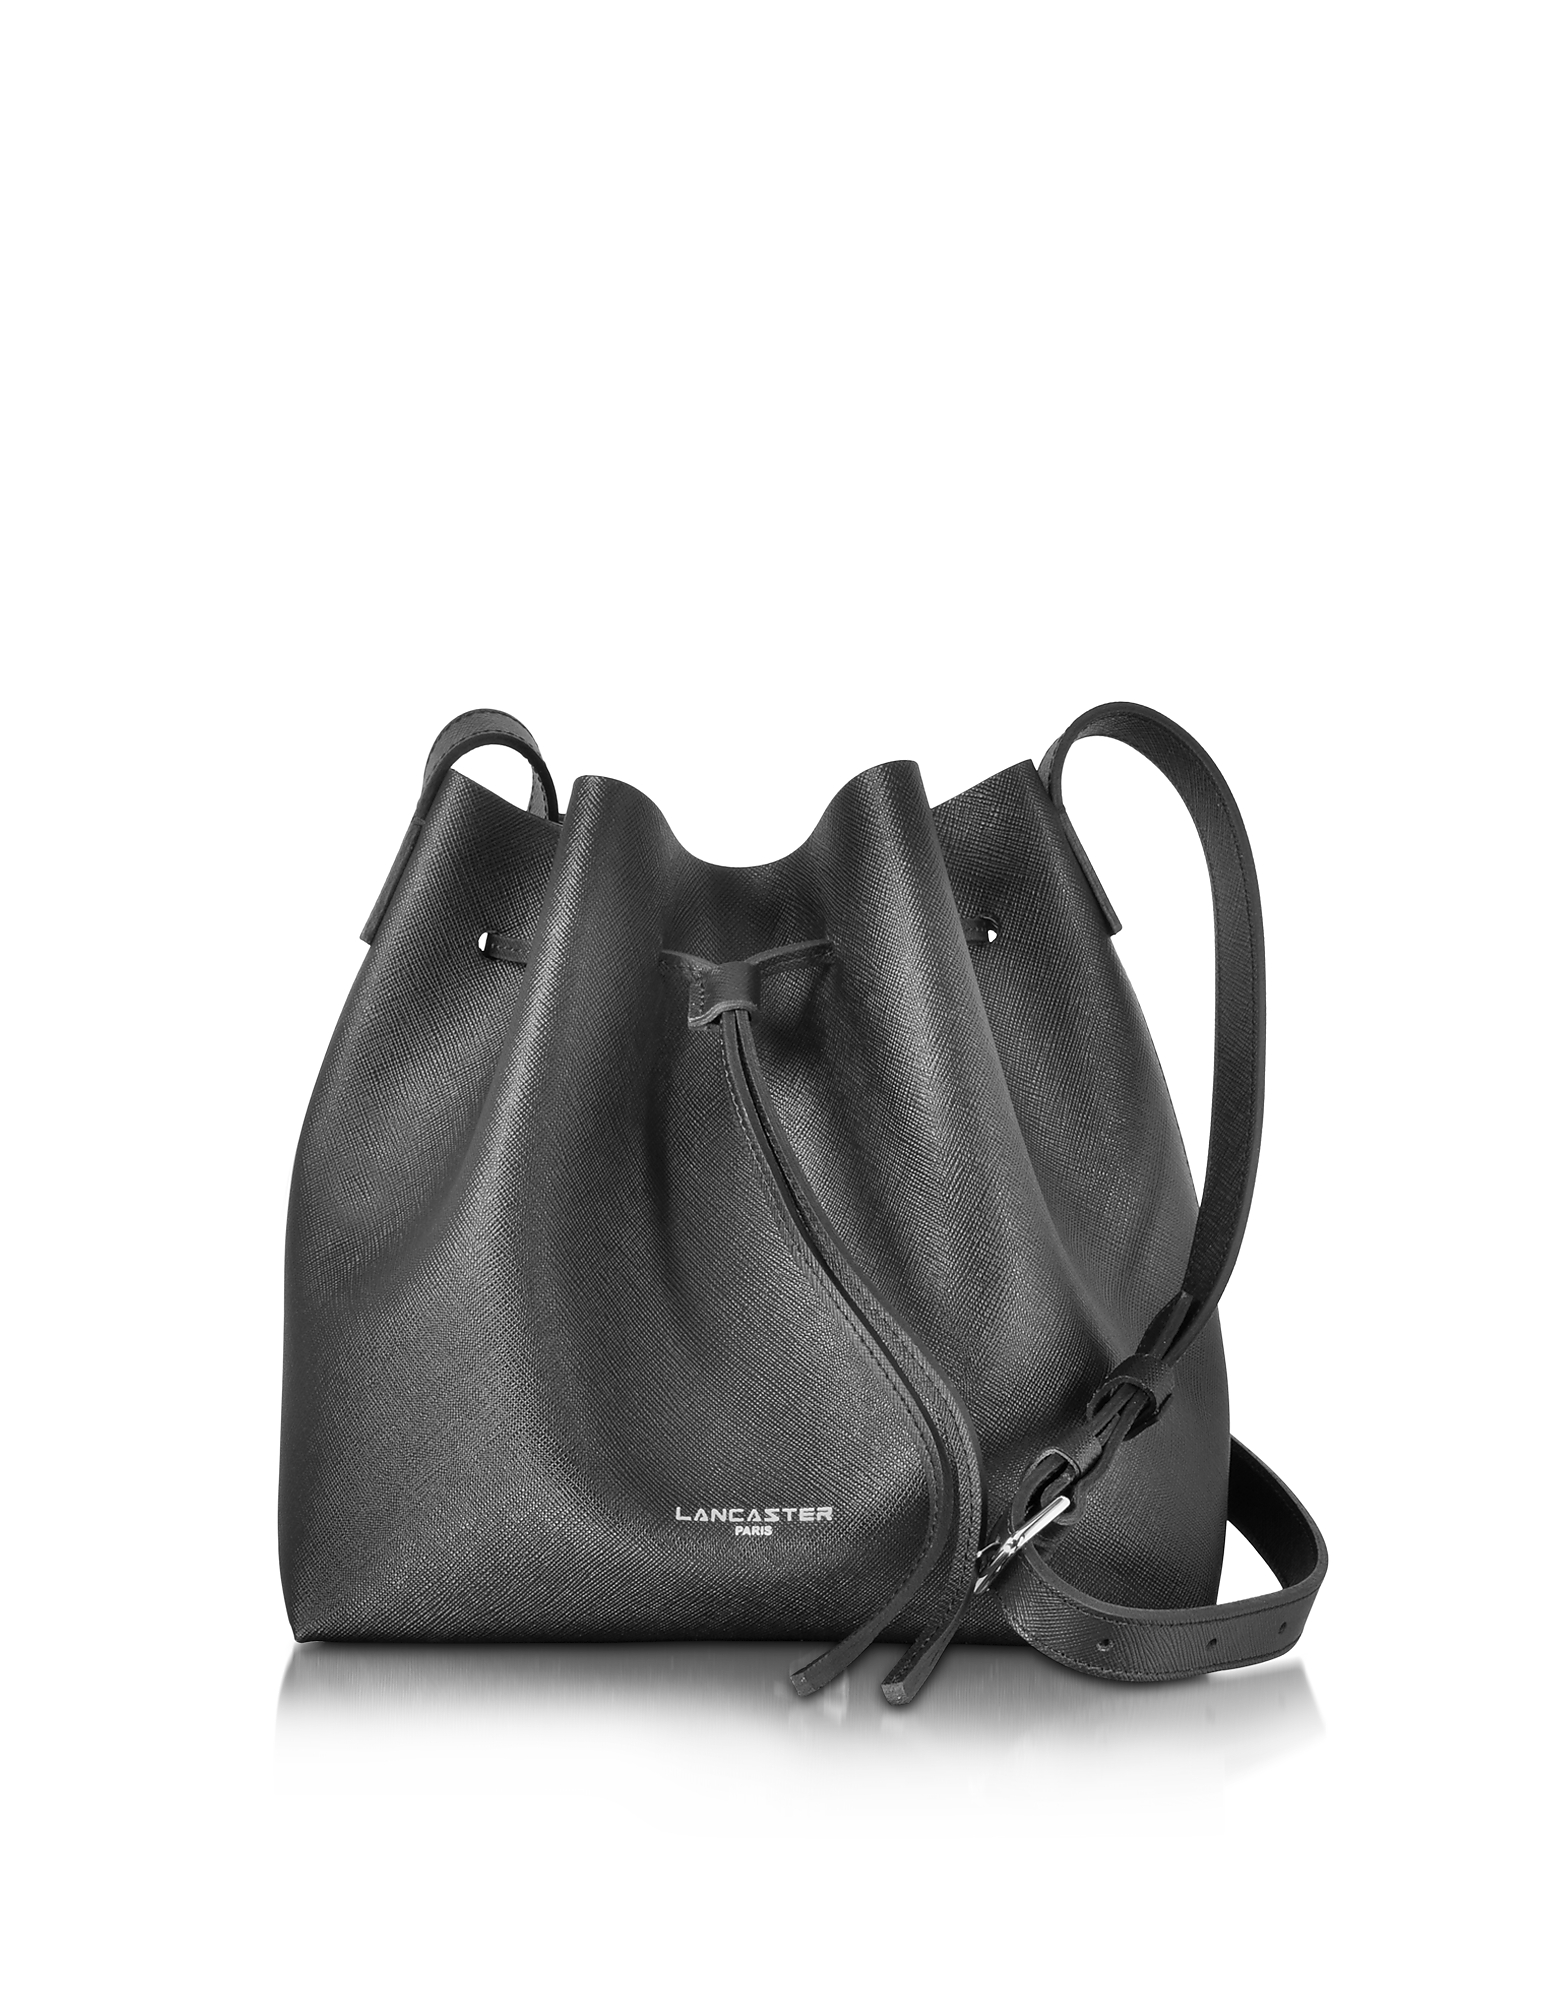 Pur & Element Saffiano Calf-Leather Bucket Bag